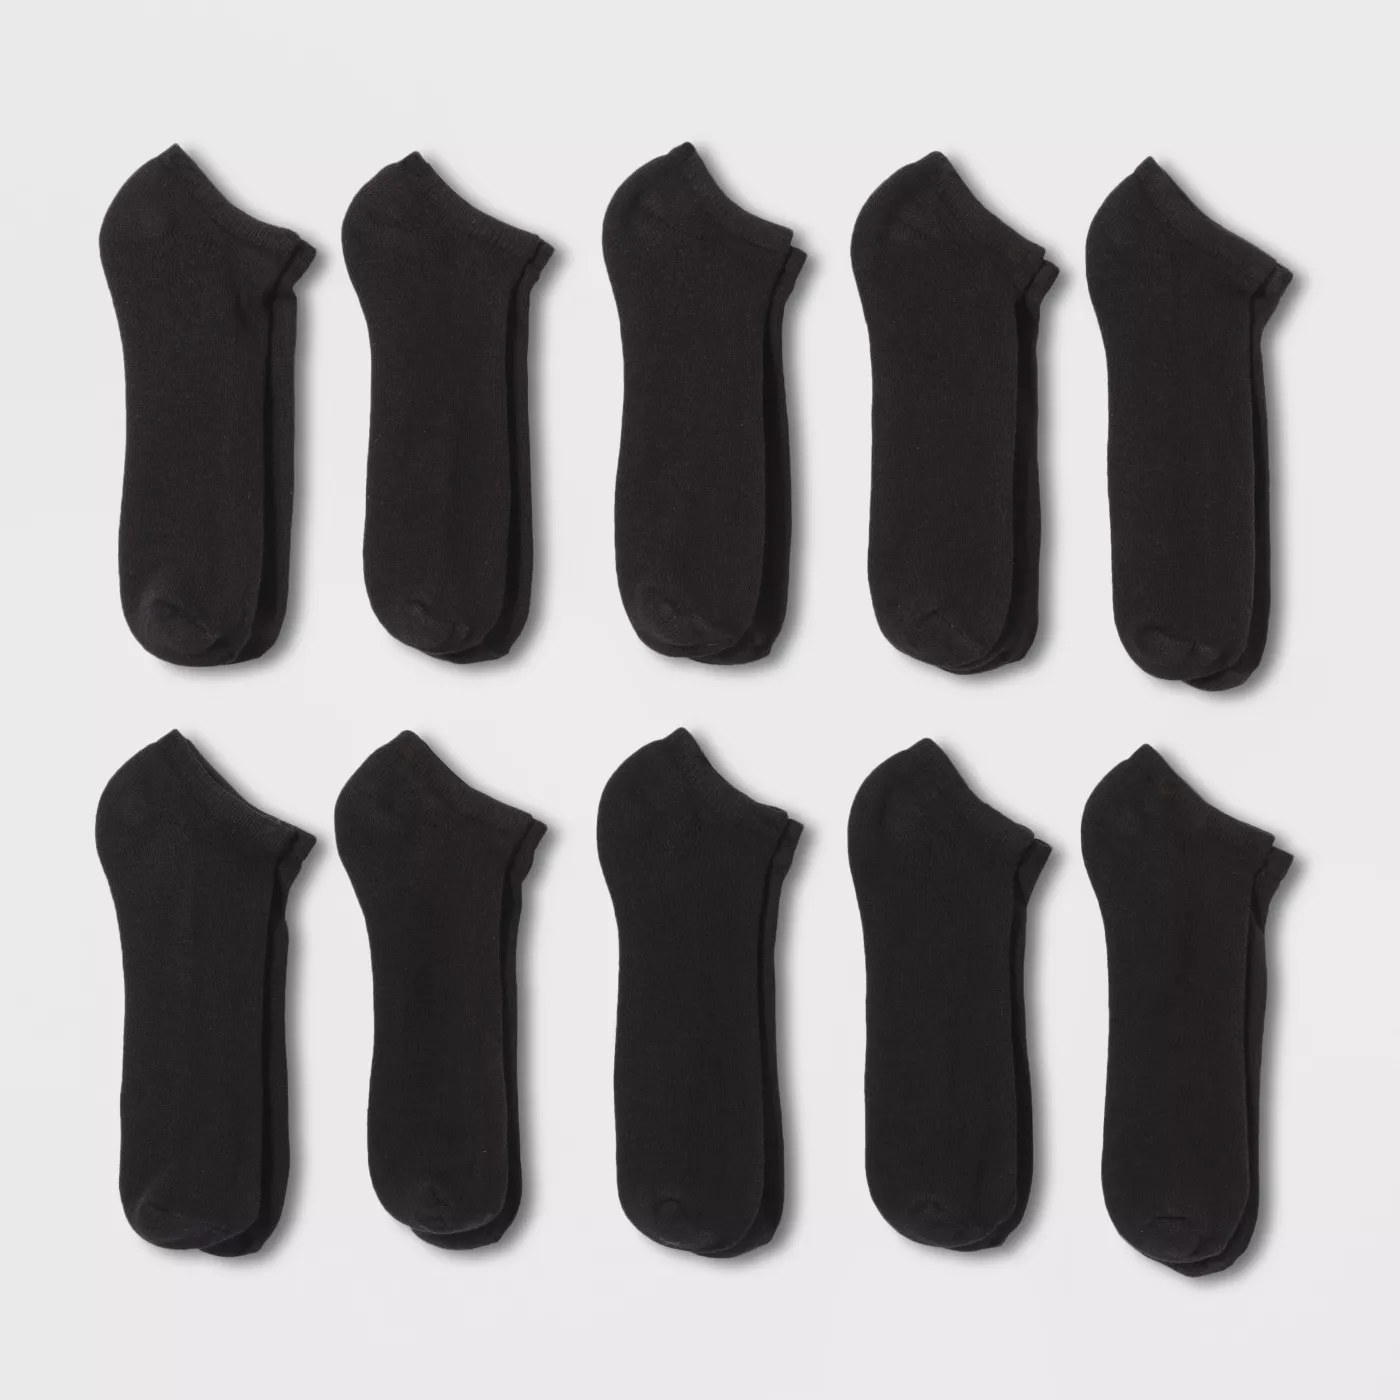 A 10-pack pair of black, no-show socks